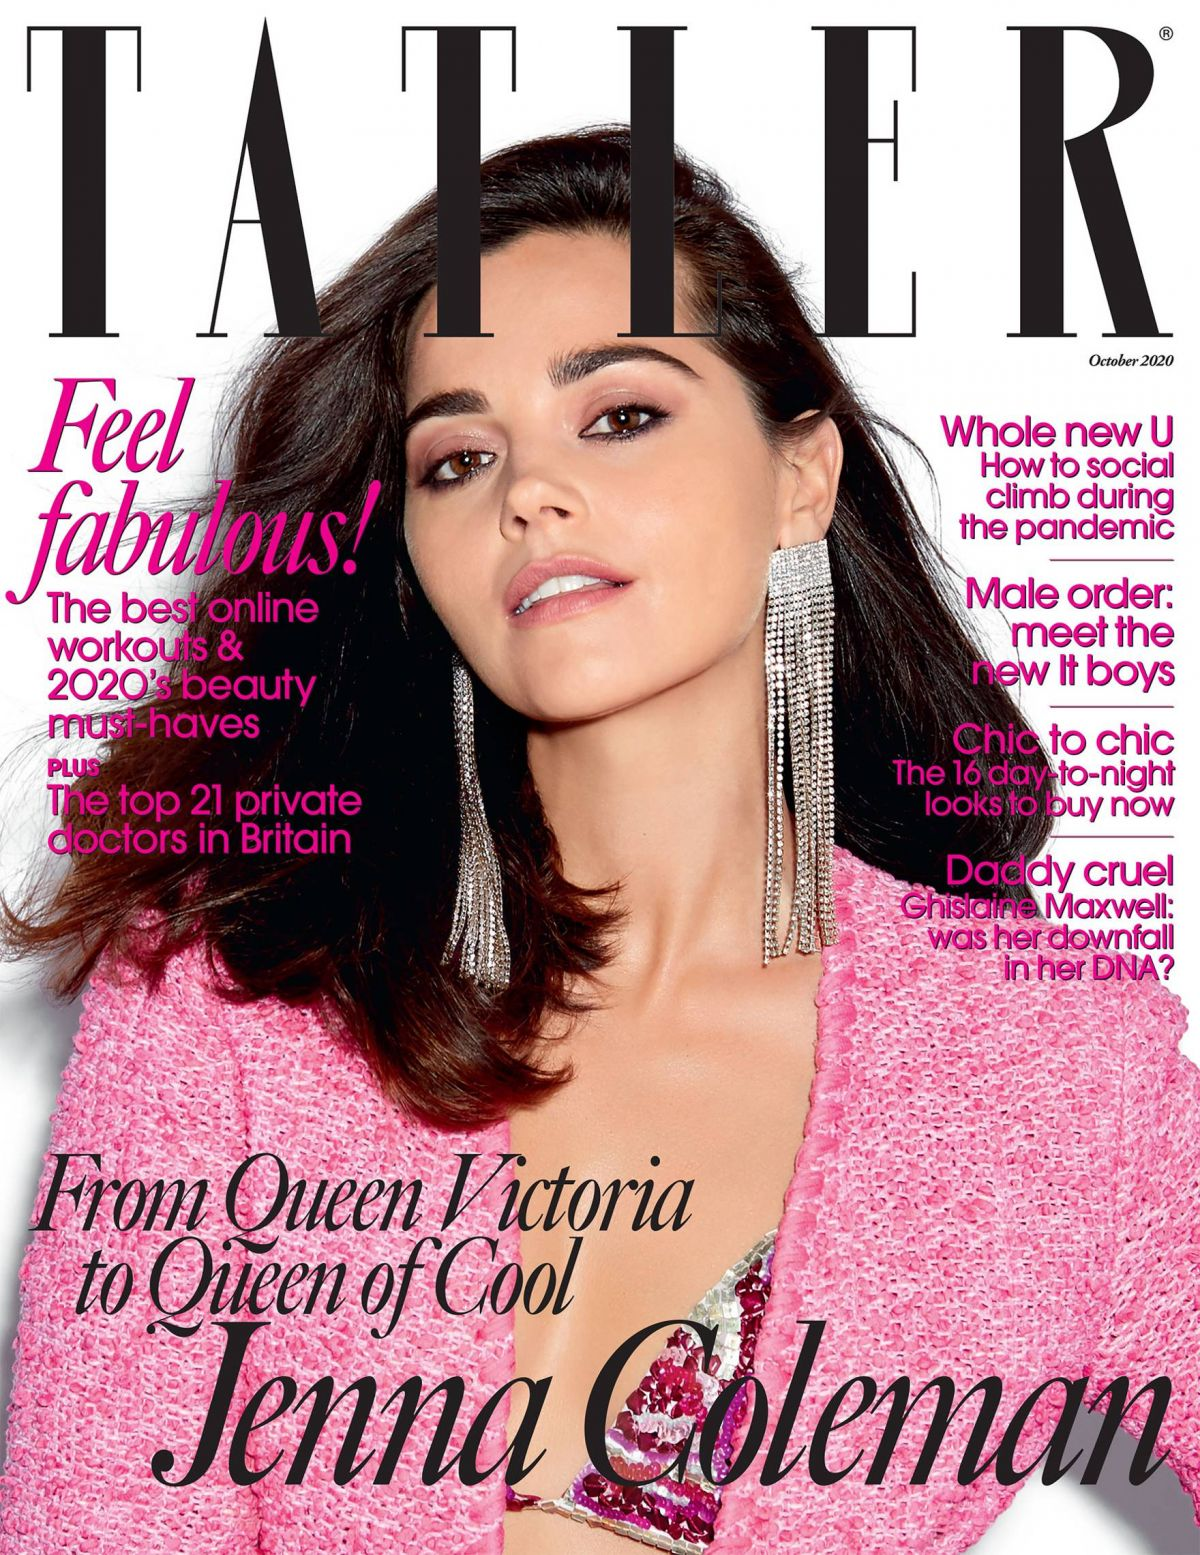 Inchoo Bijoux X TATLER Magazine - October 2020 Issue with Jenna Coleman